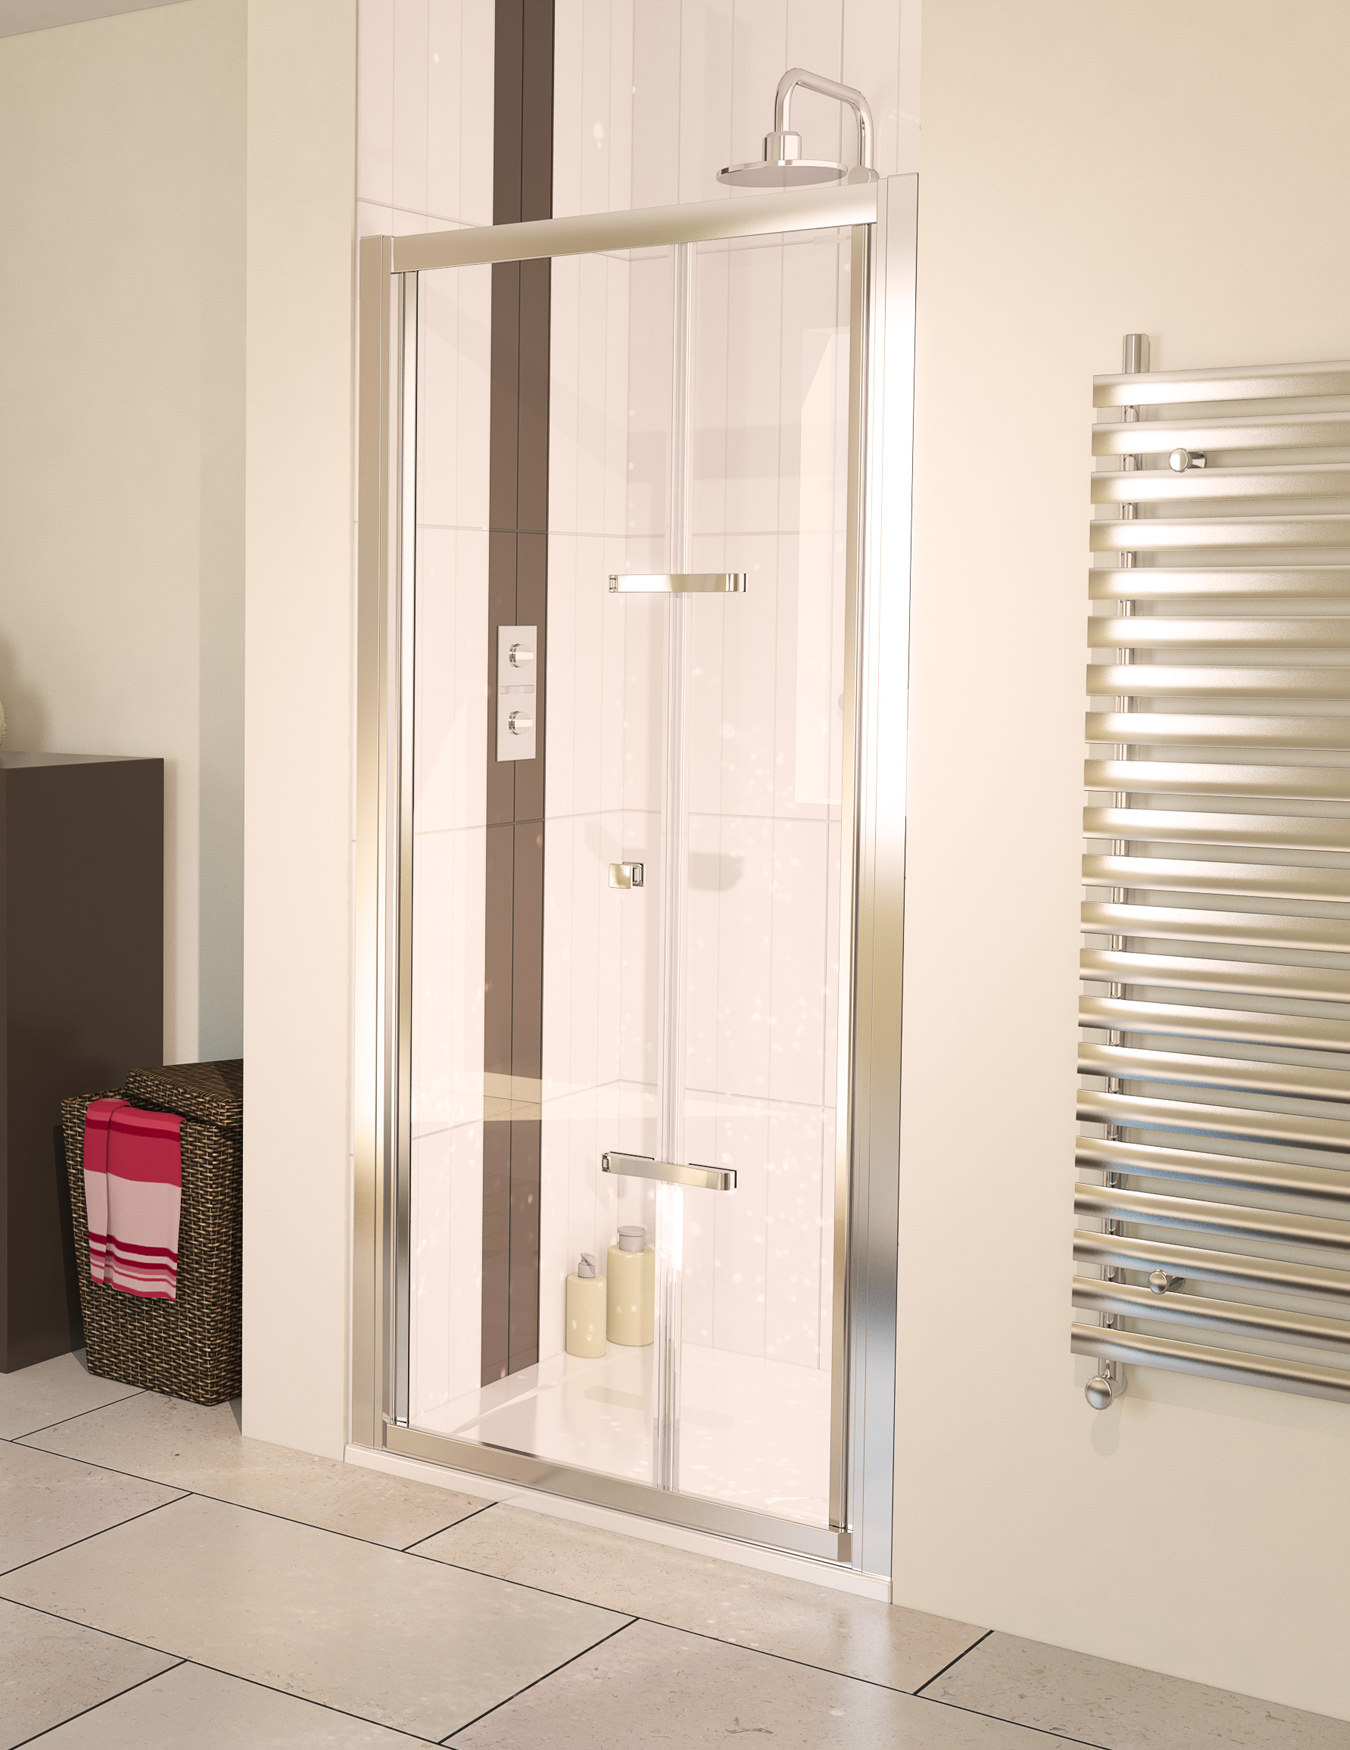 Aqualux aqua 6 bi fold shower door 900mm polished silver for 1800mm high shower door